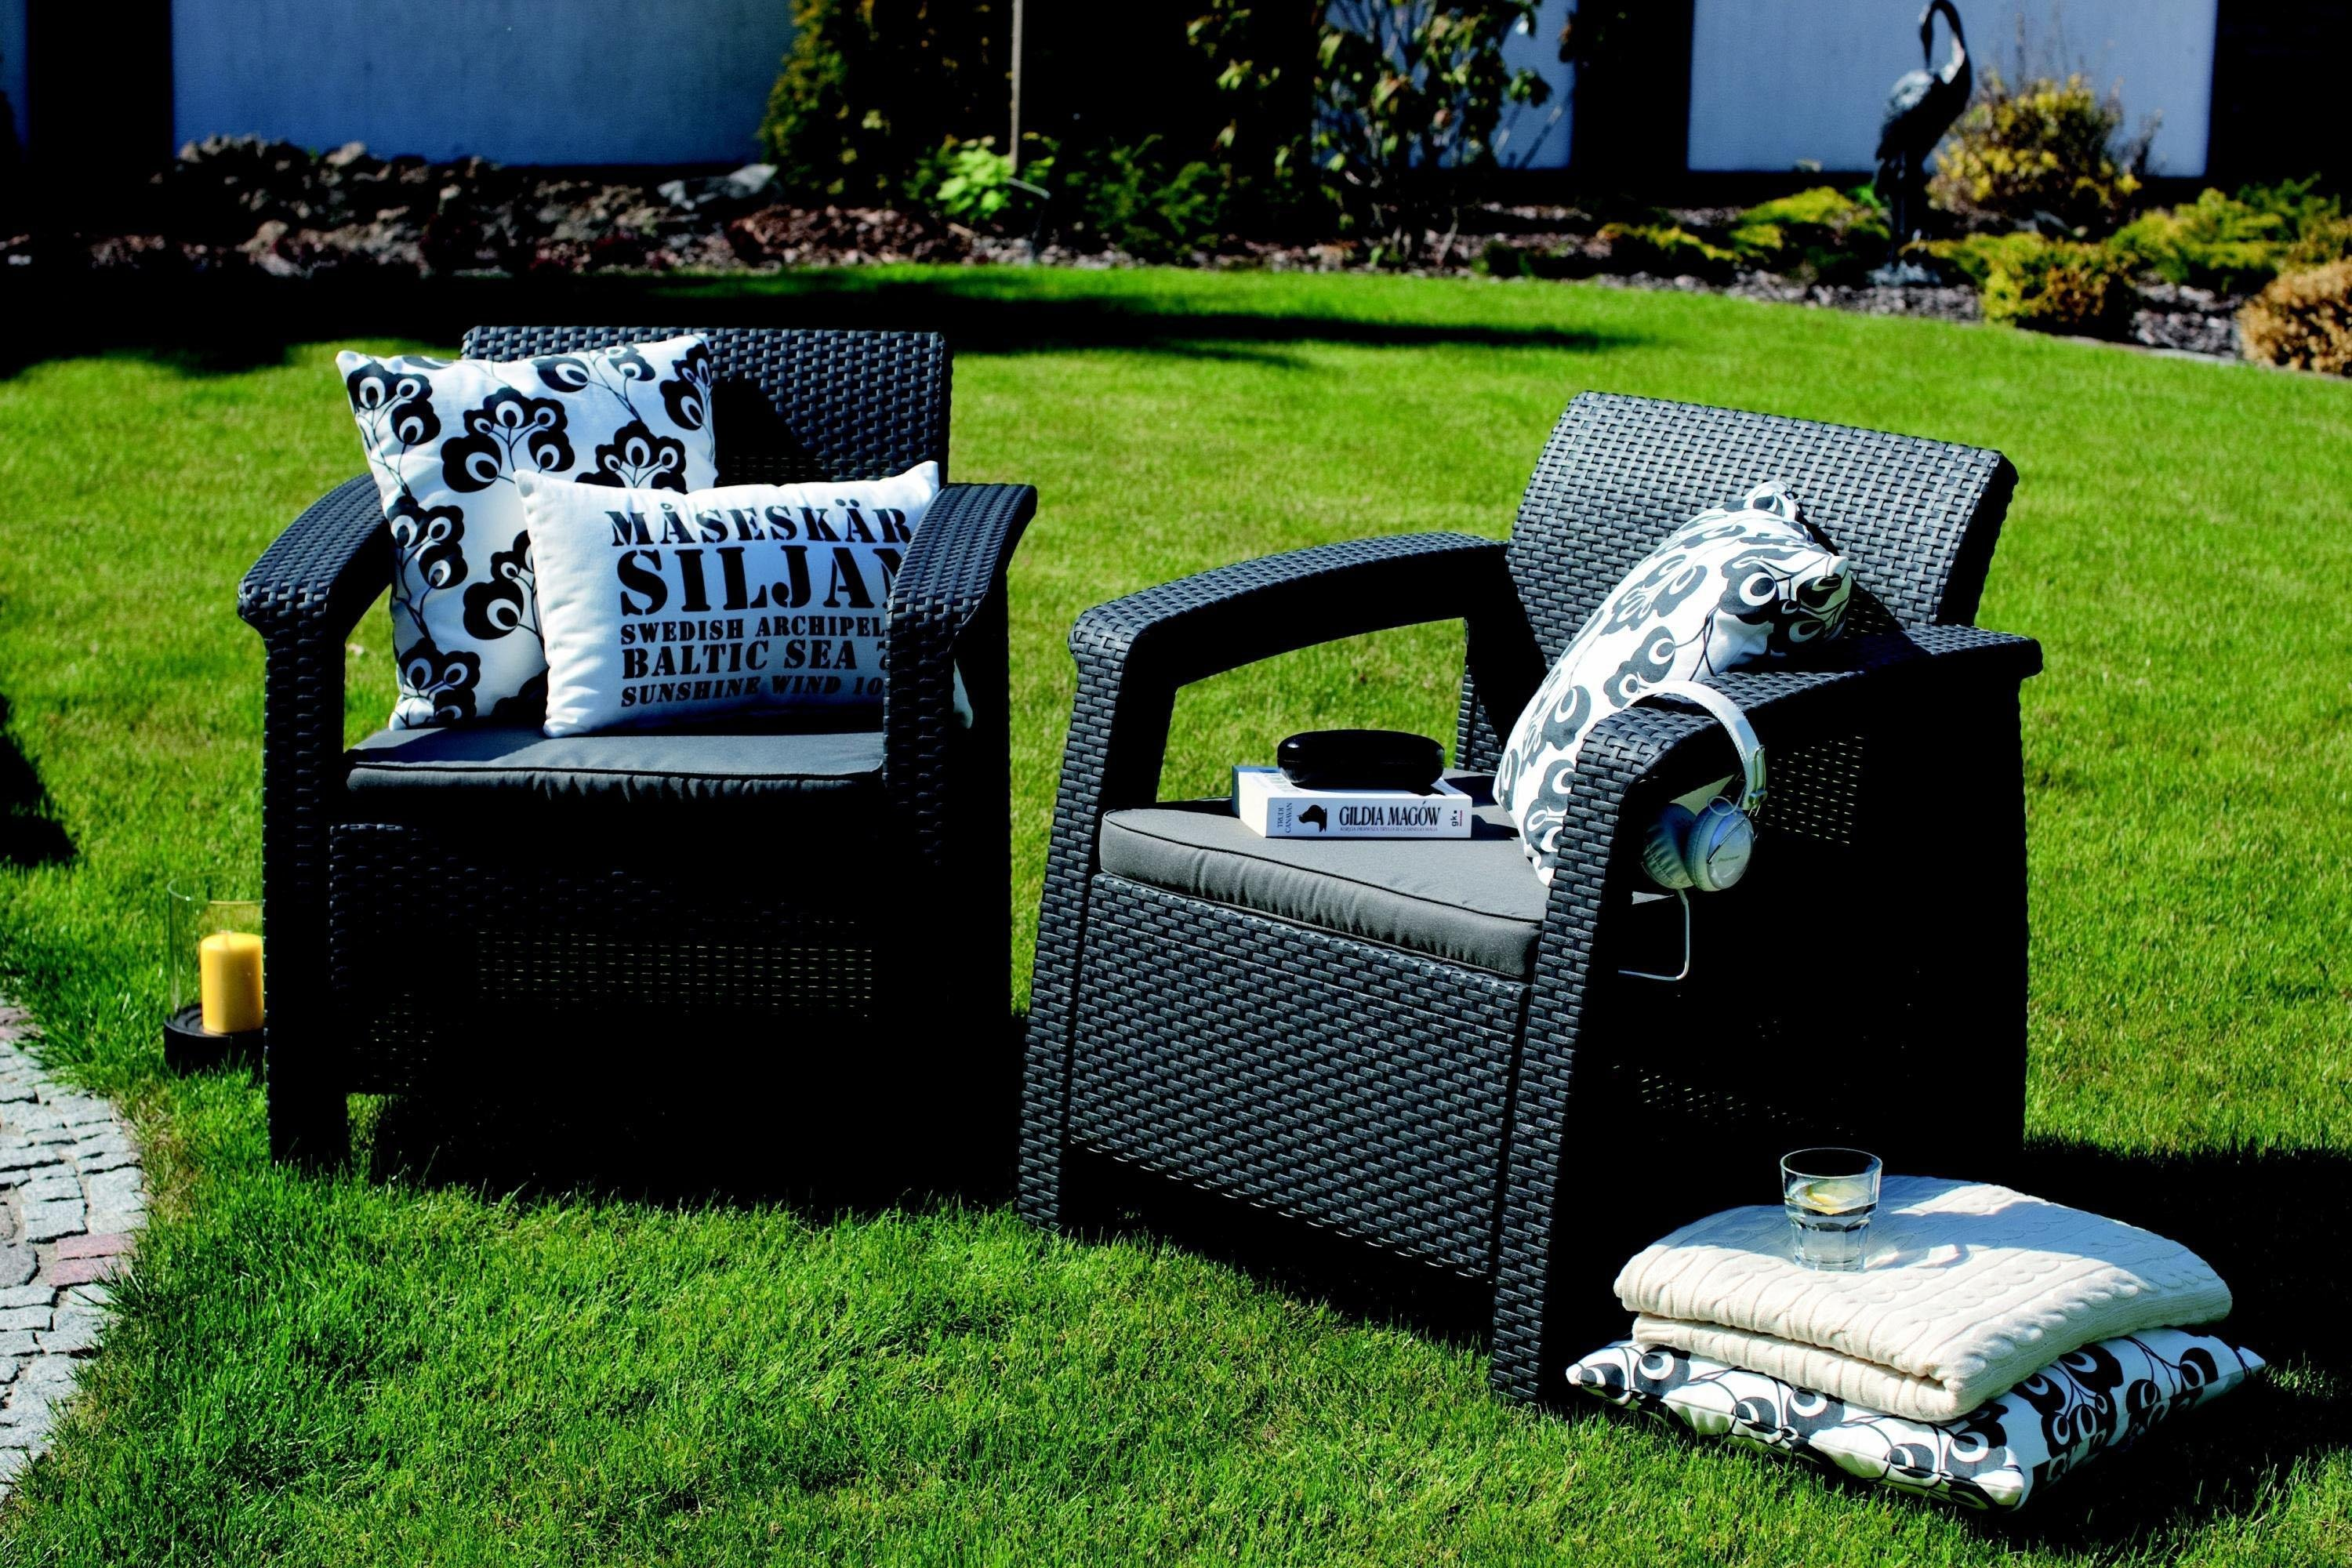 Amazon.com : Keter Corfu 4 Piece Set All Weather Outdoor Patio Garden Furniture W/ Cushions